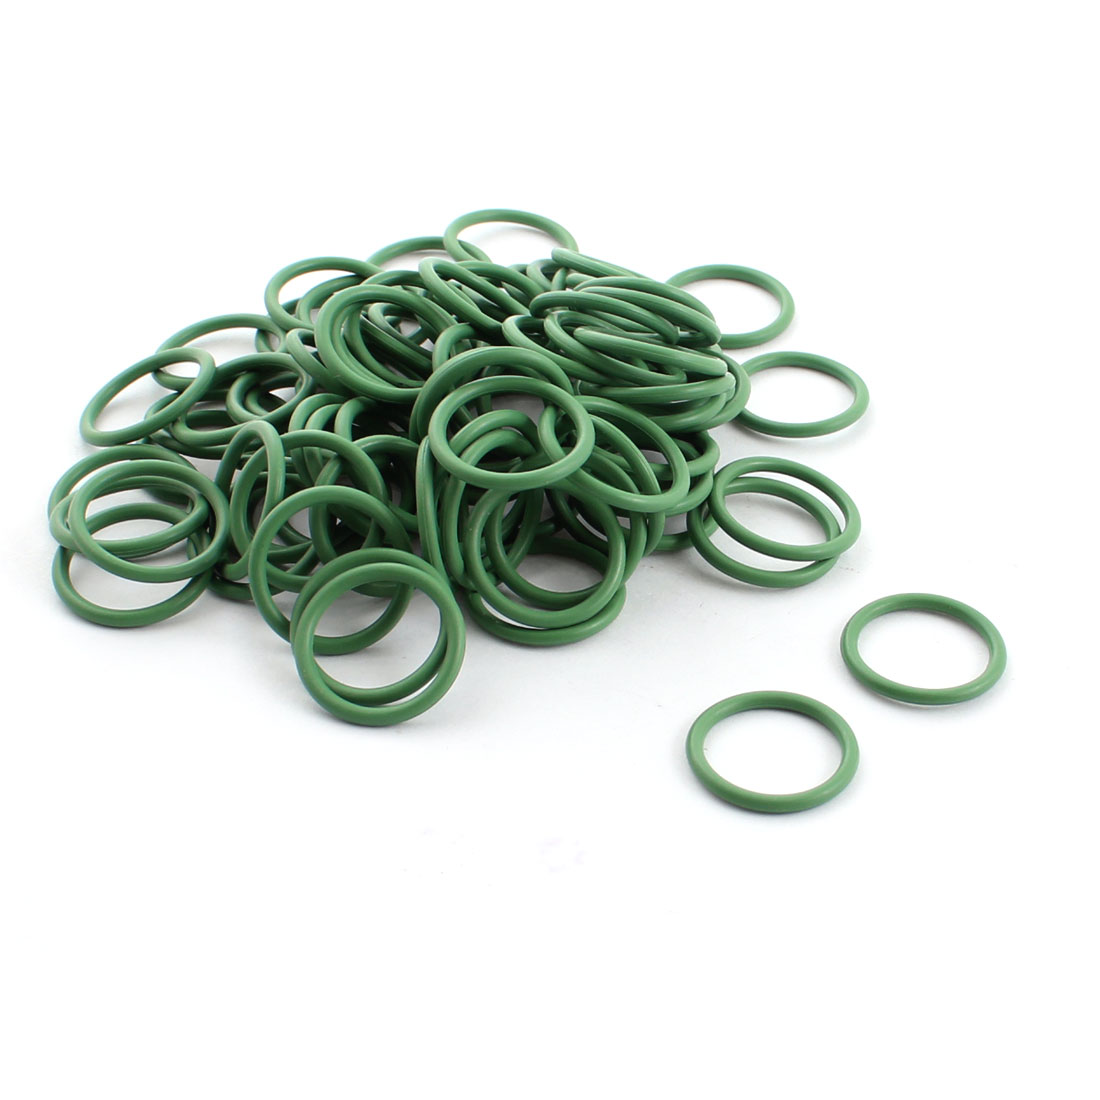 100 Pcs Green Rubber 17mm x 14mm x 1.5mm Oil Seal O Rings Gaskets Washers